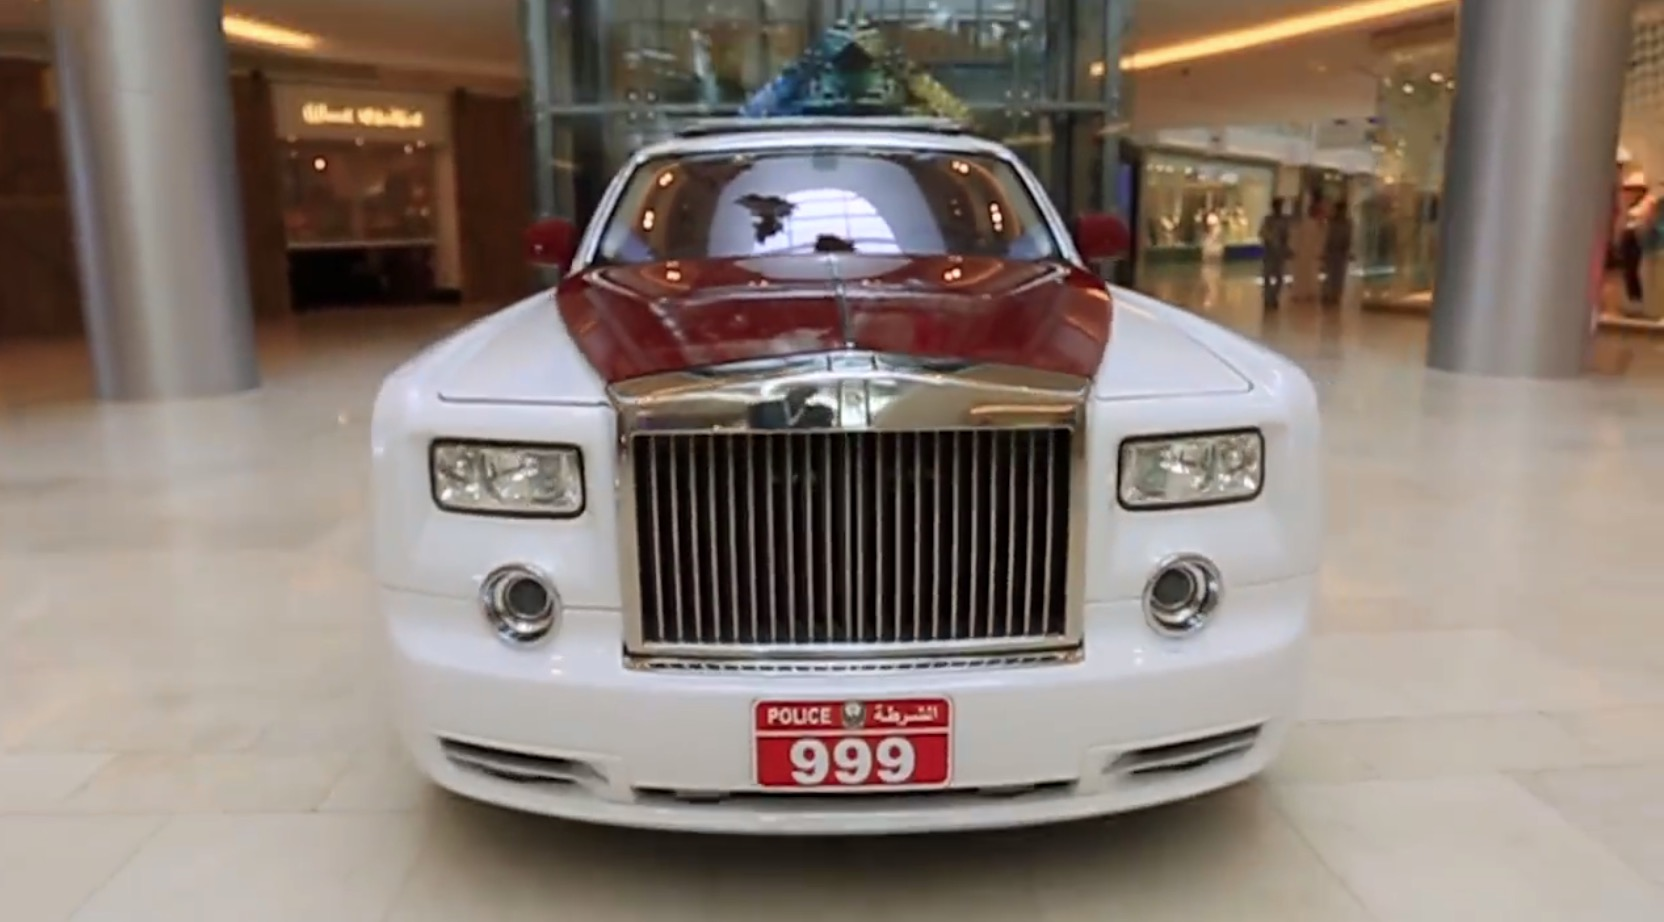 Abu Dhabi Police Will Have A Rolls Royce Phantom Chasing Bad Guys Autoevolution